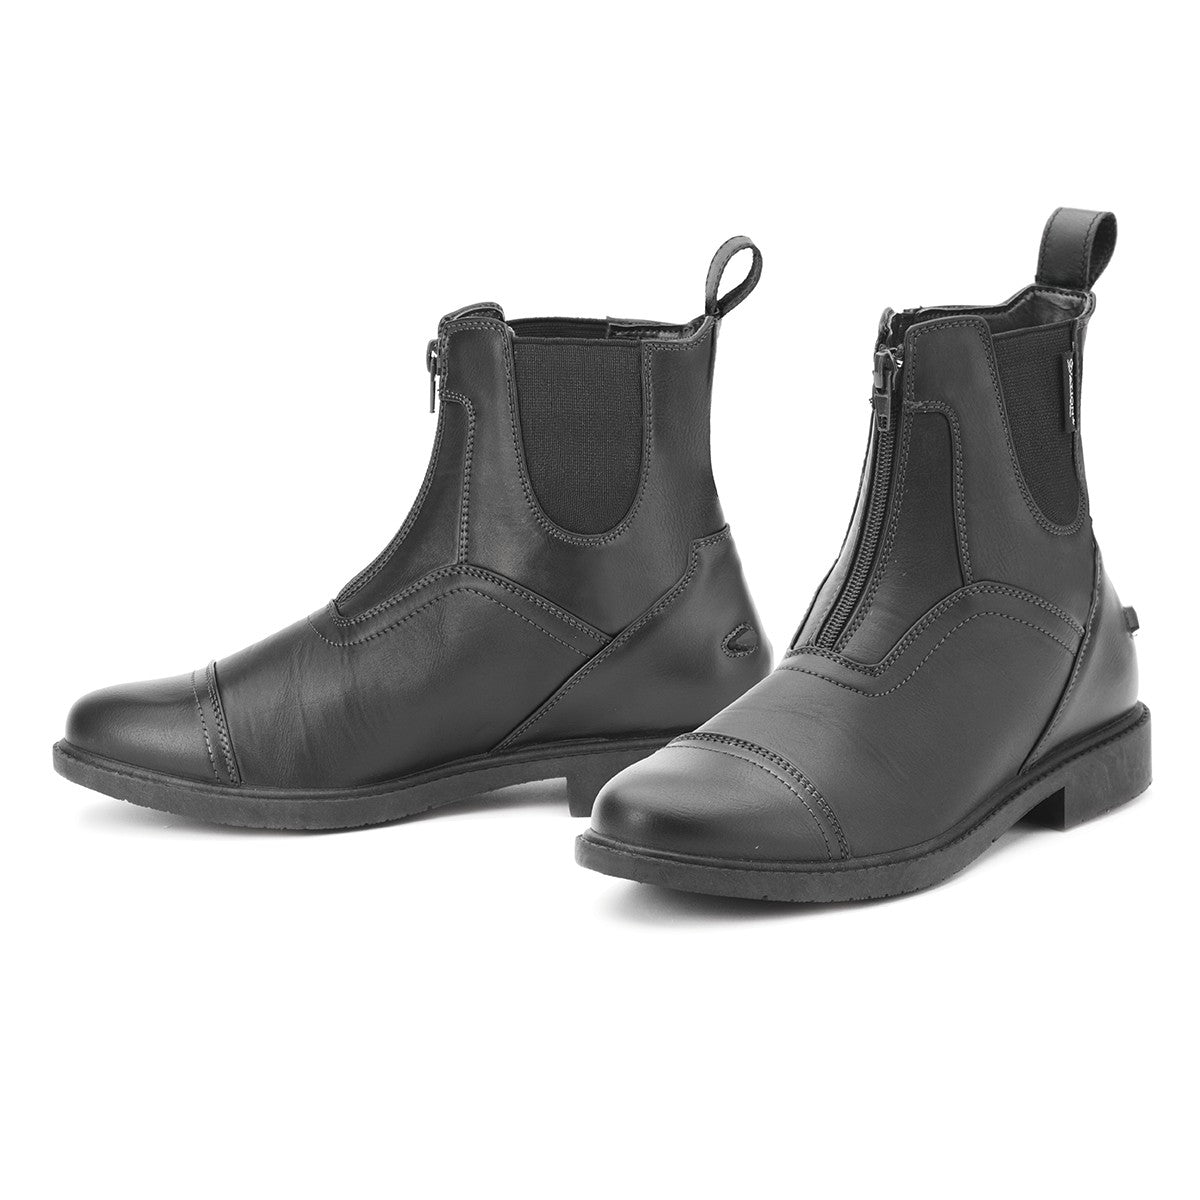 Ovation Energy Paddock Boot